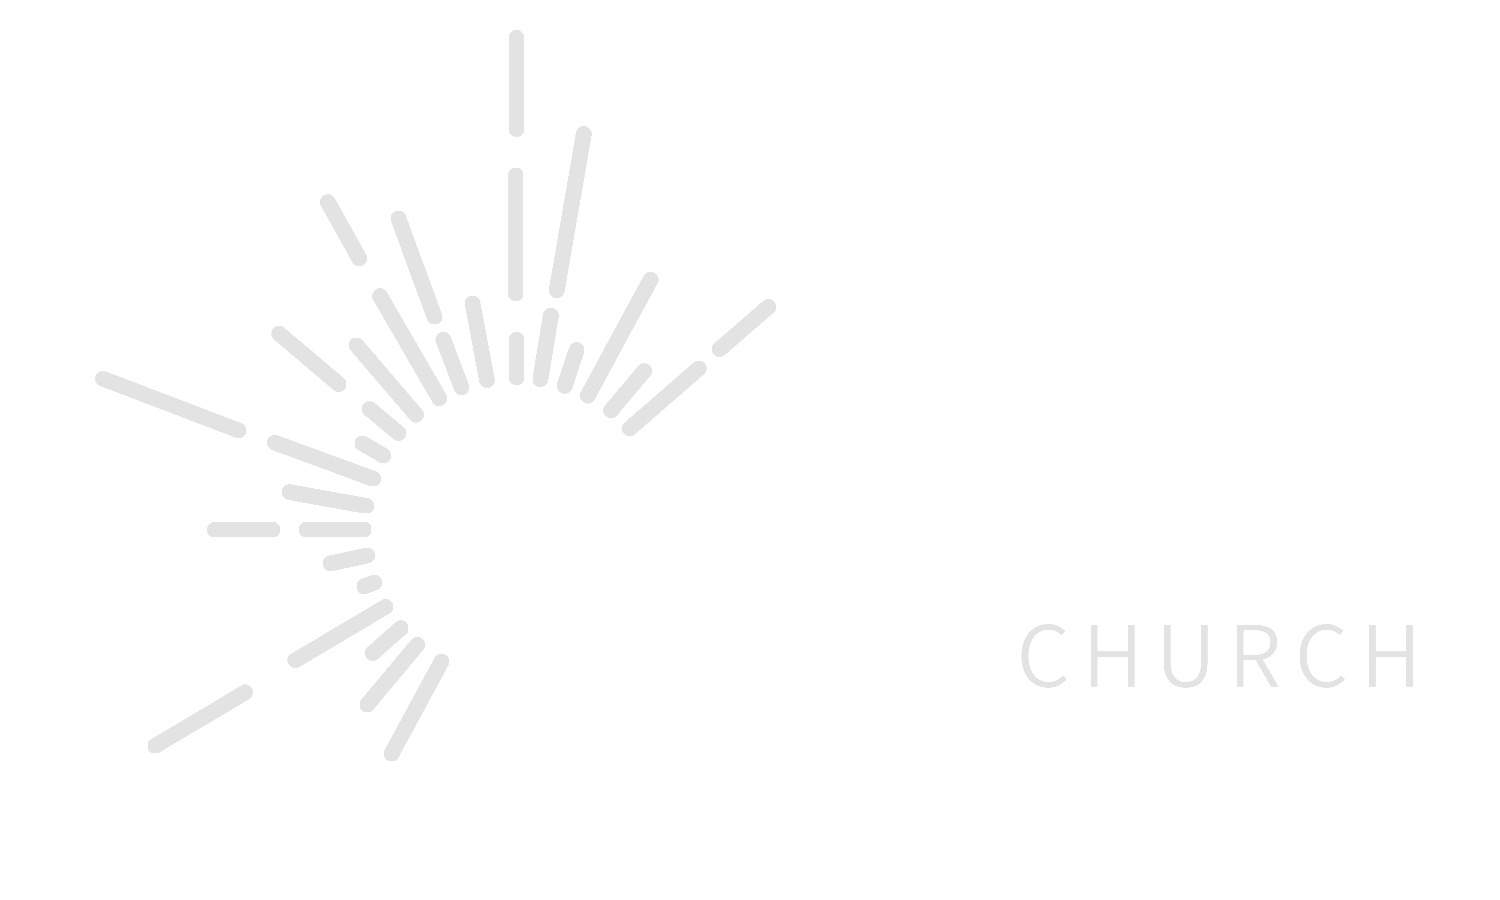 Luminate Church